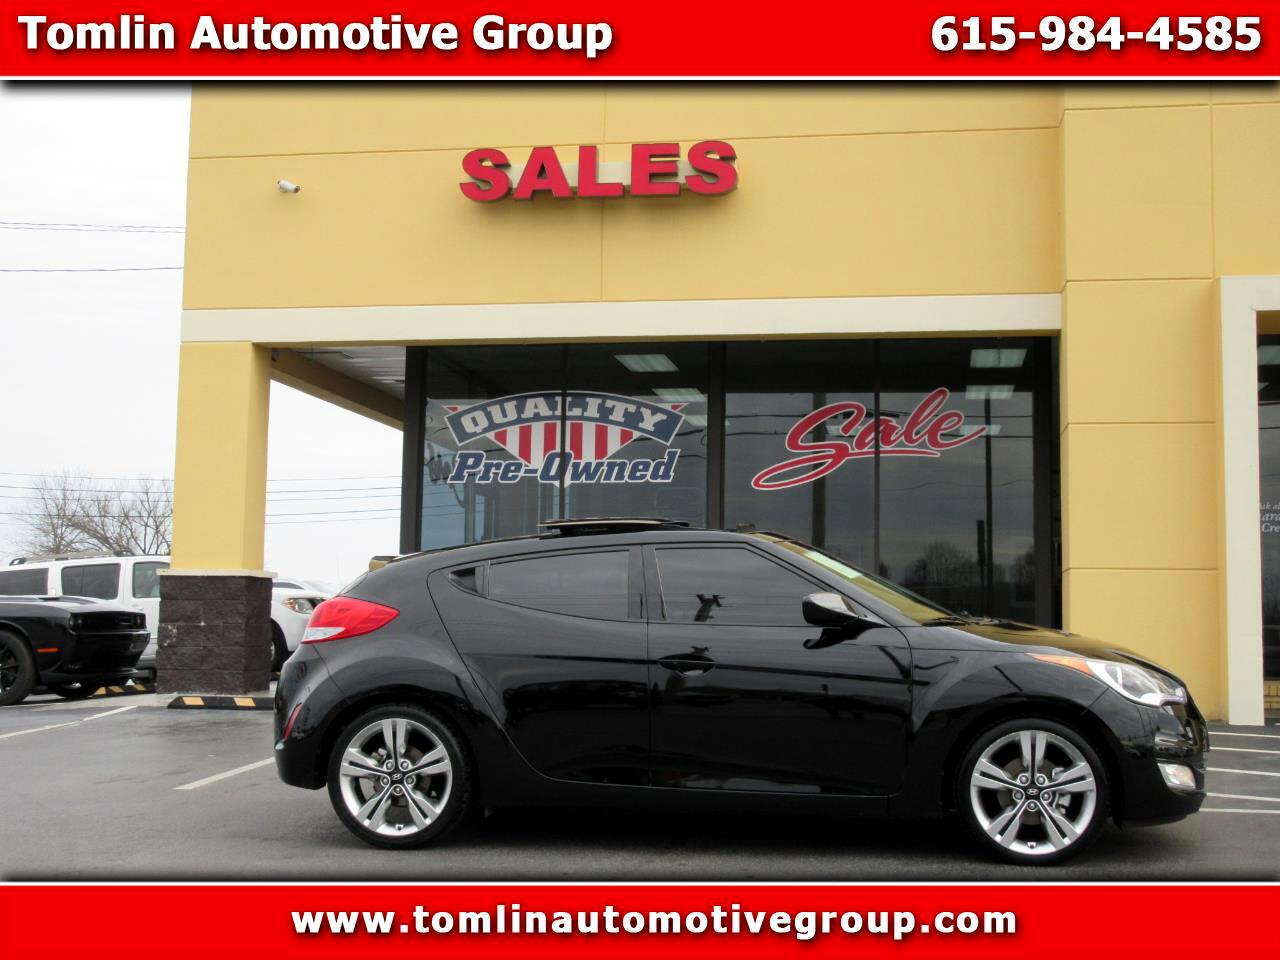 2014 Hyundai Veloster 3dr Cpe Auto RE:FLEX w/Red Int